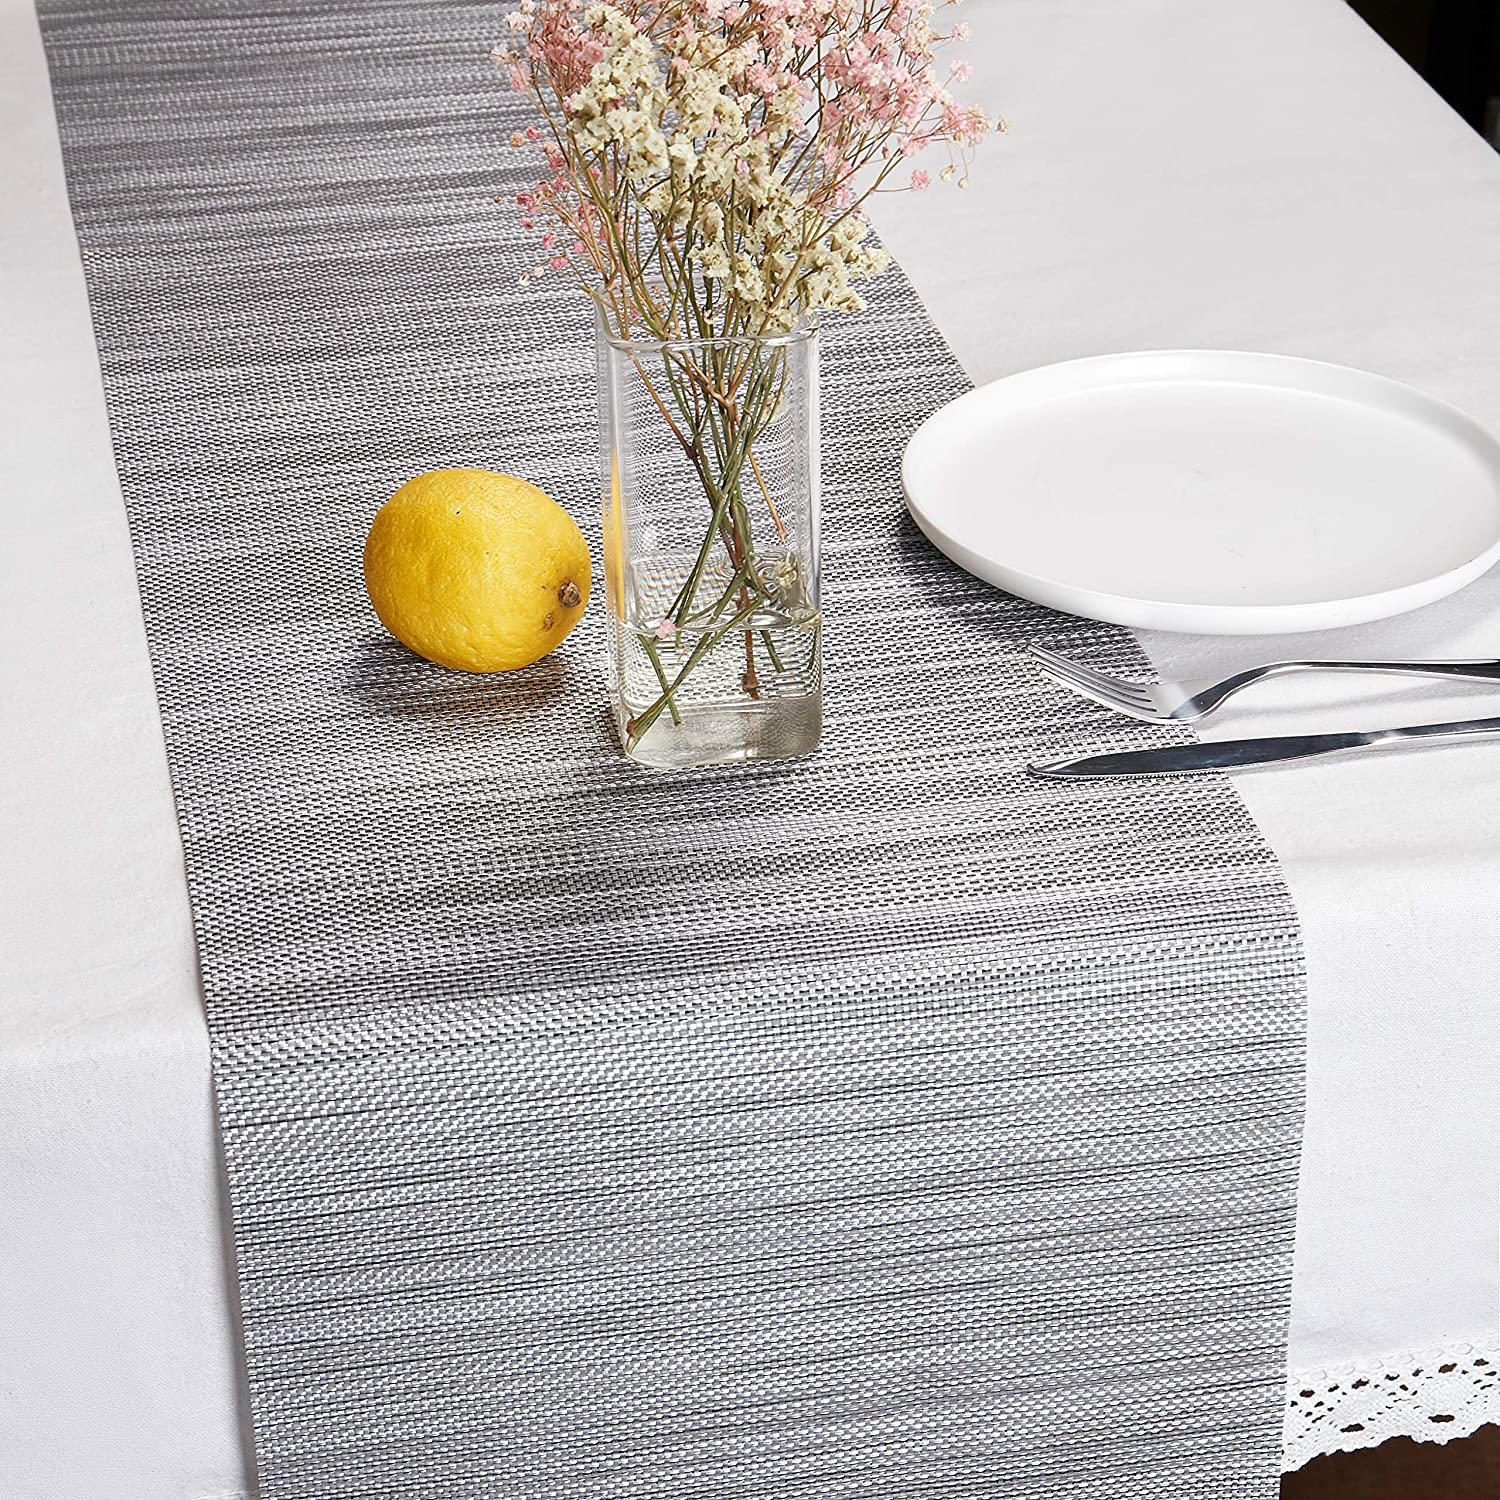 "DOLOPL PVC Table Runners 12""×72"" Non-Slip Heat Resistant Modern Table Runner for Family Dinner Office Kitchen Table in Gray"